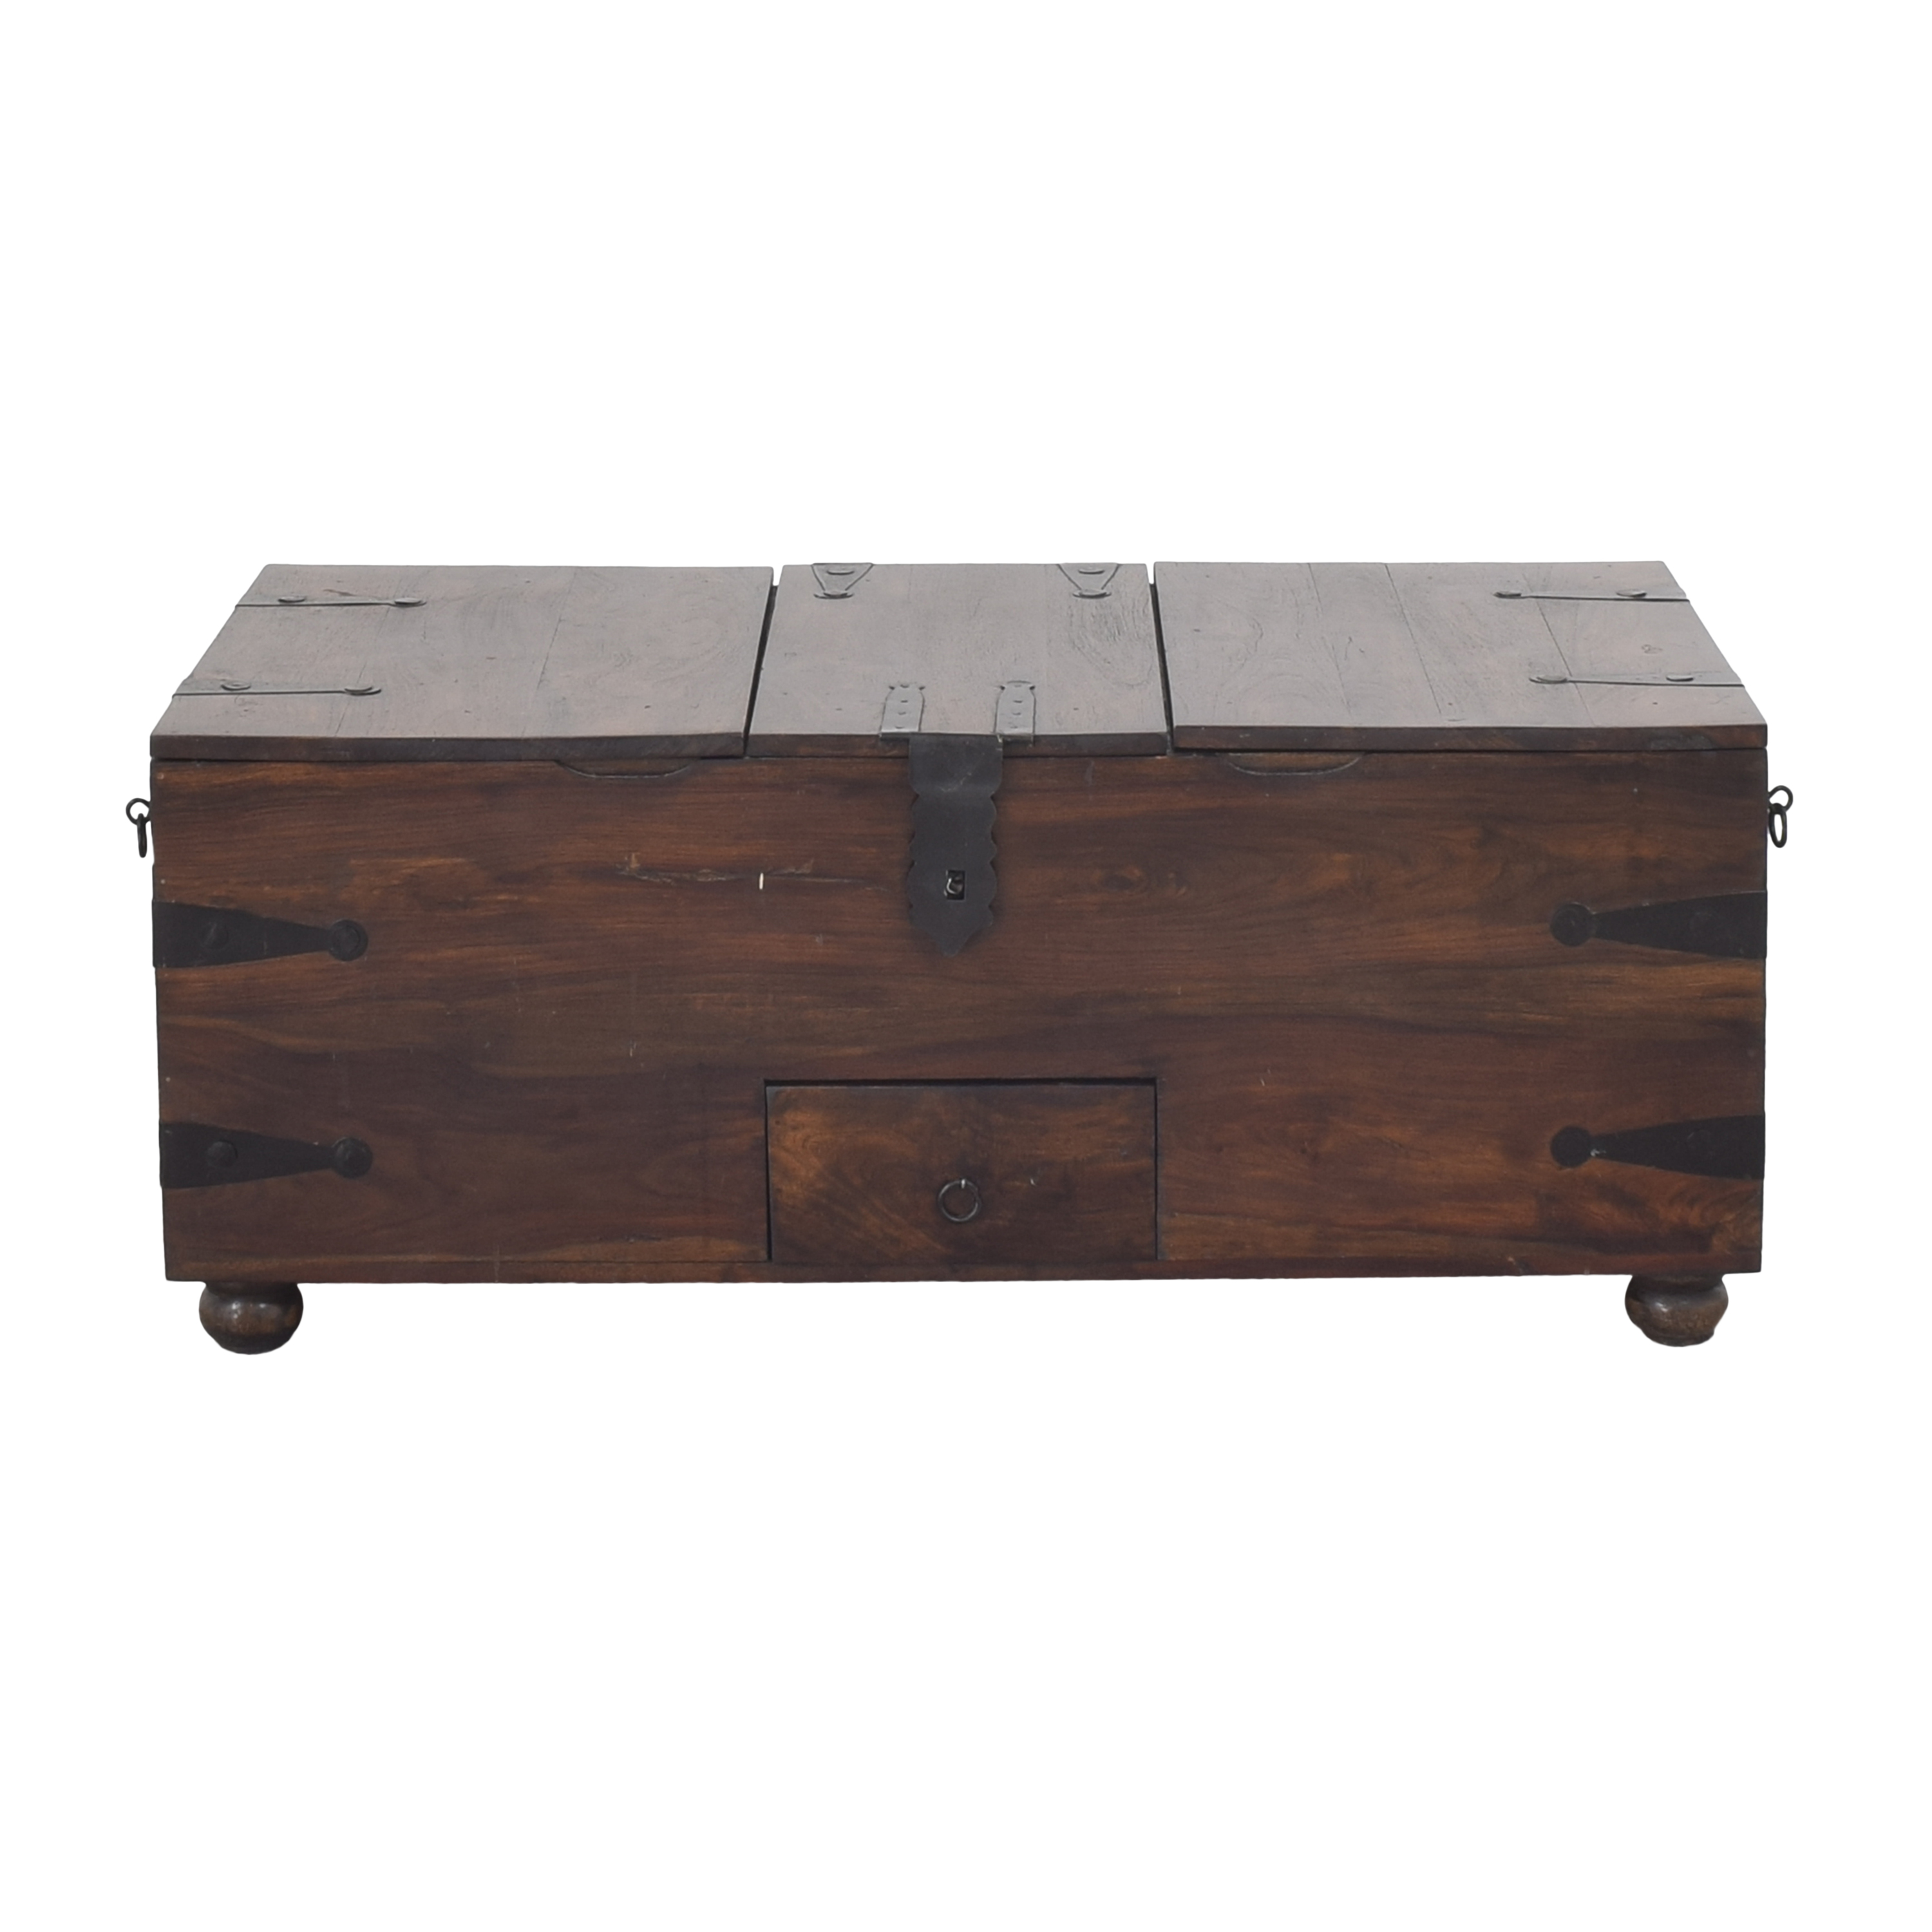 Crate & Barrel Crate & Barrel Taka Trunk Storage Coffee Table brown and black